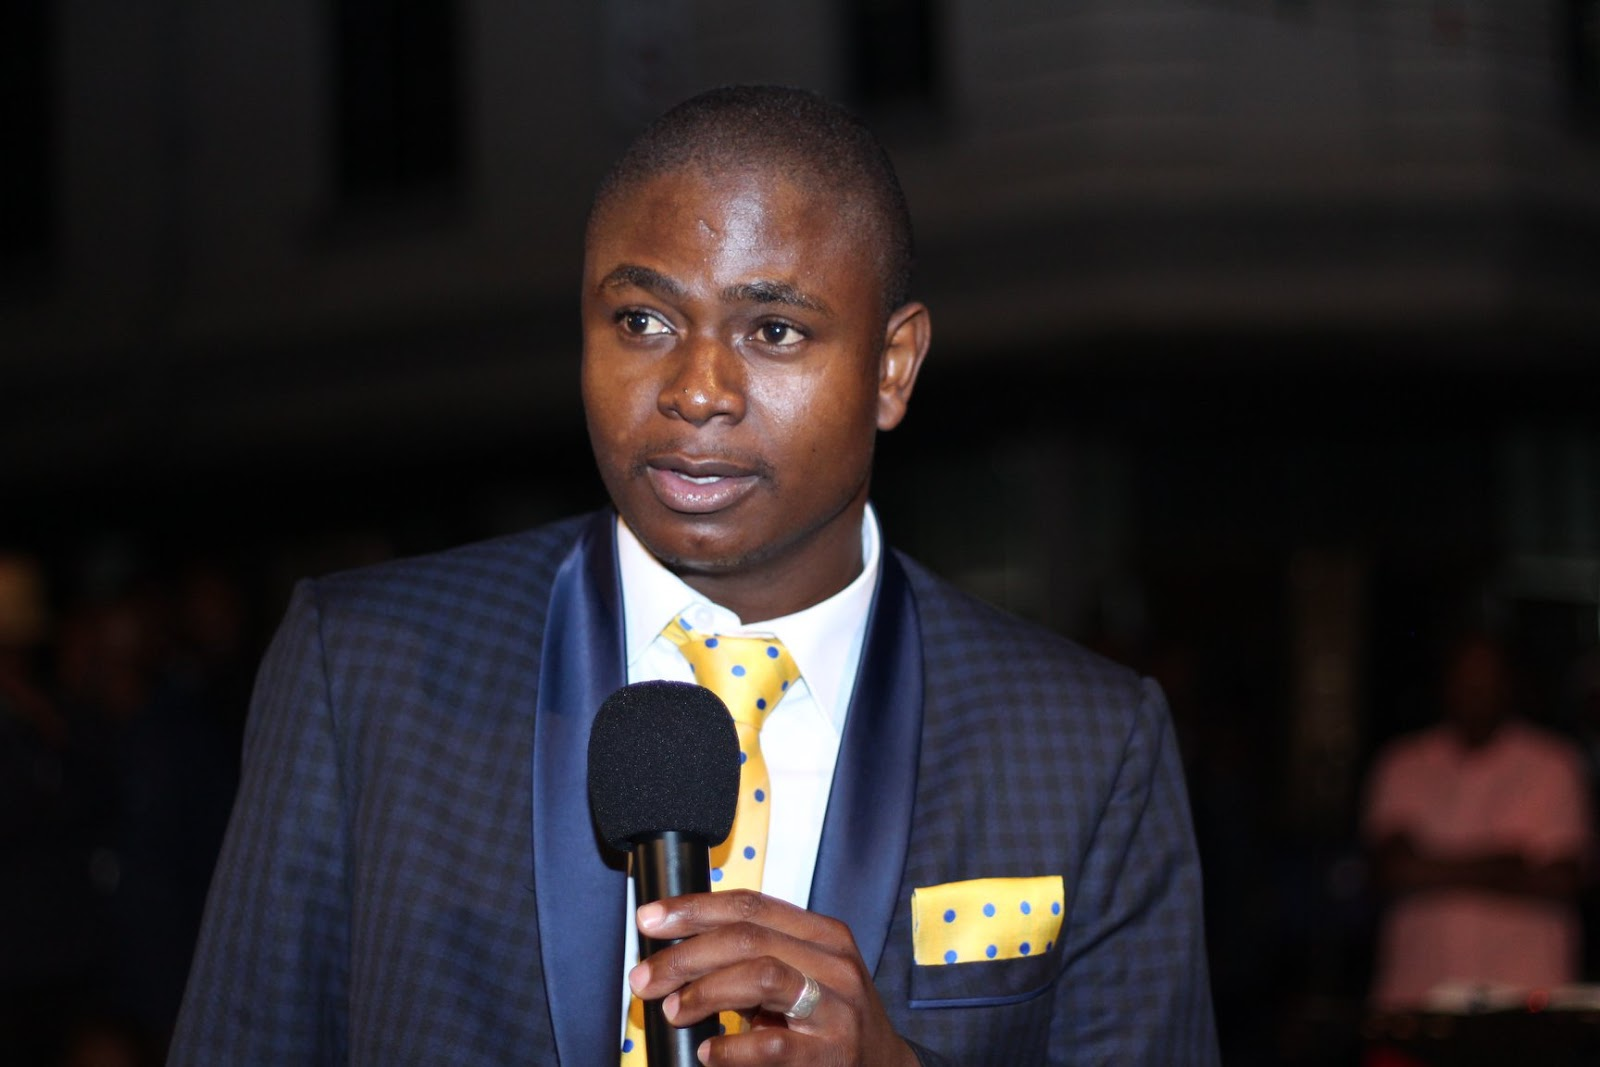 Check Video - Apostle Chiwenga Speaks Out - says It Was An Assasination!